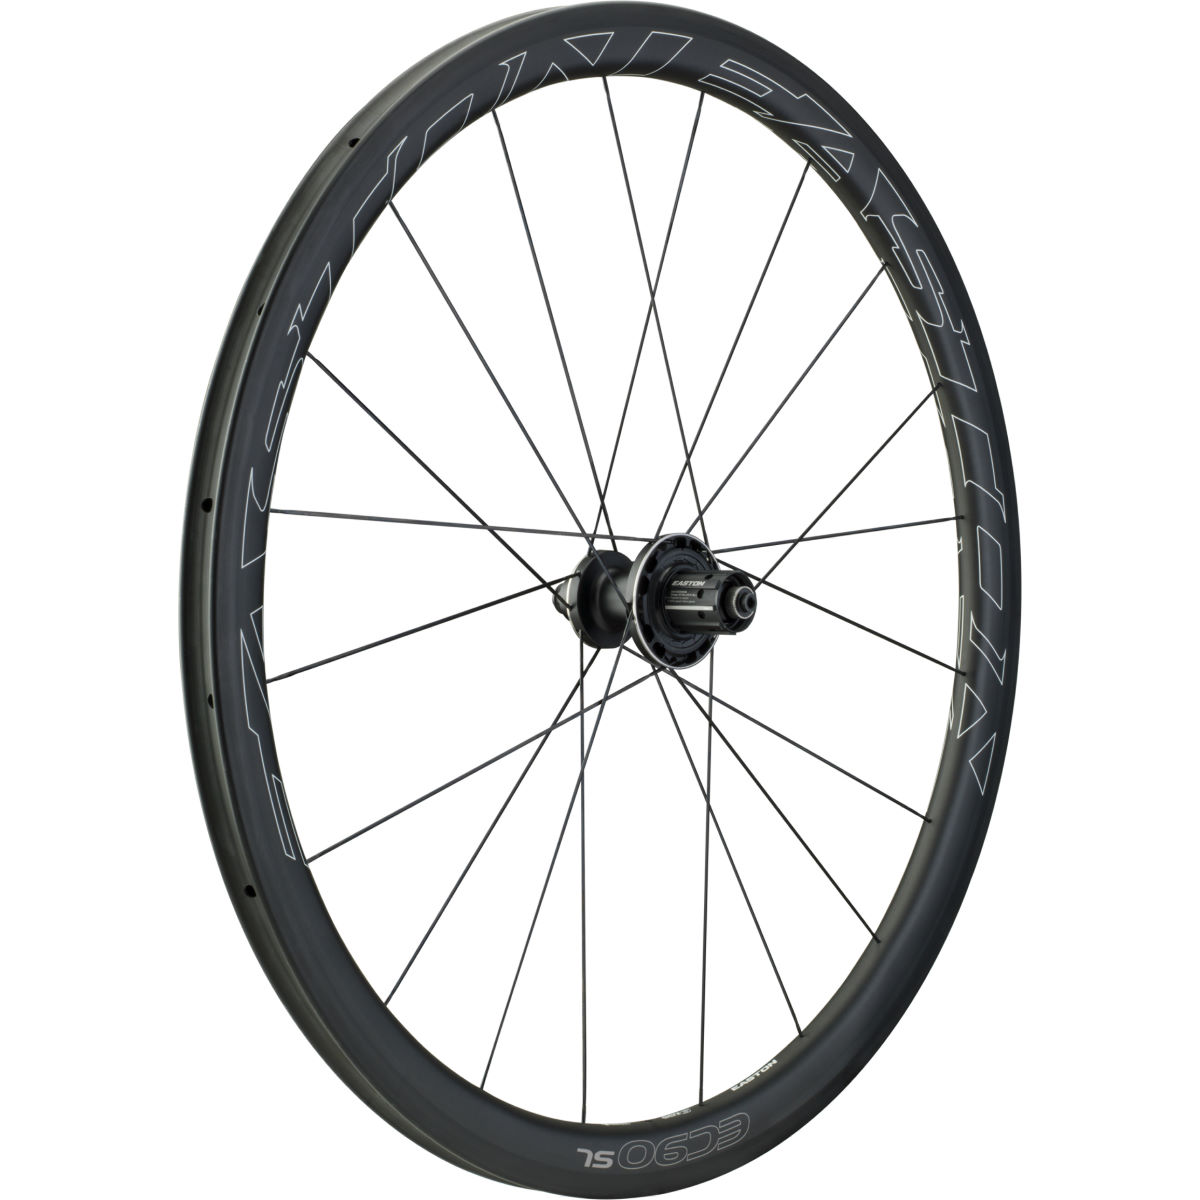 Easton EC90 SL Carbon Tubeless Clincher Rear Wheel - Ruedas de competición